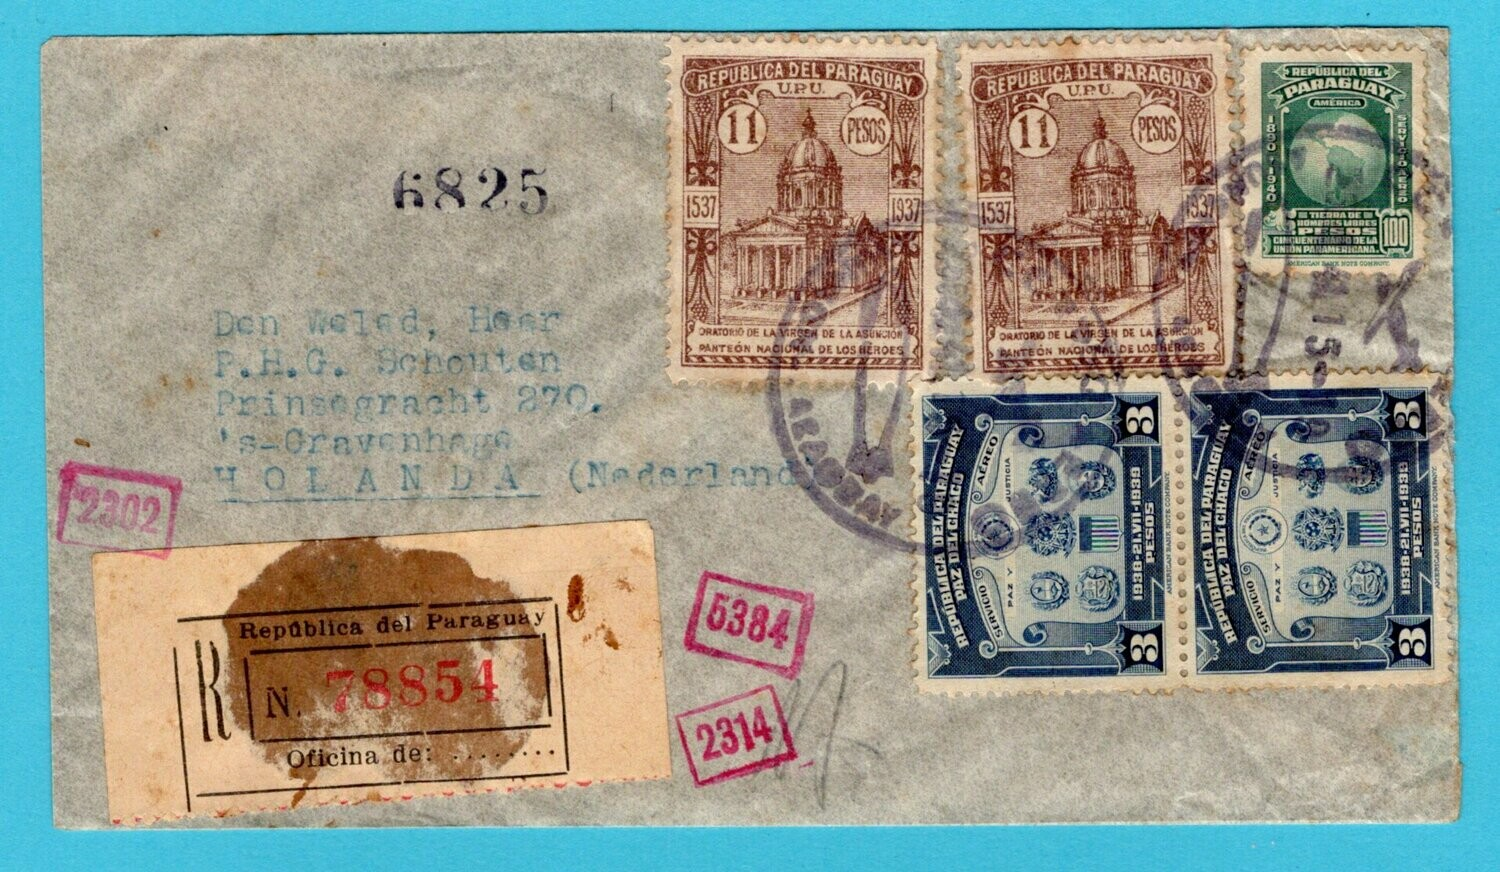 PARAGUAY R air censor cover 1941 Asuncion by LATI to Netherlands